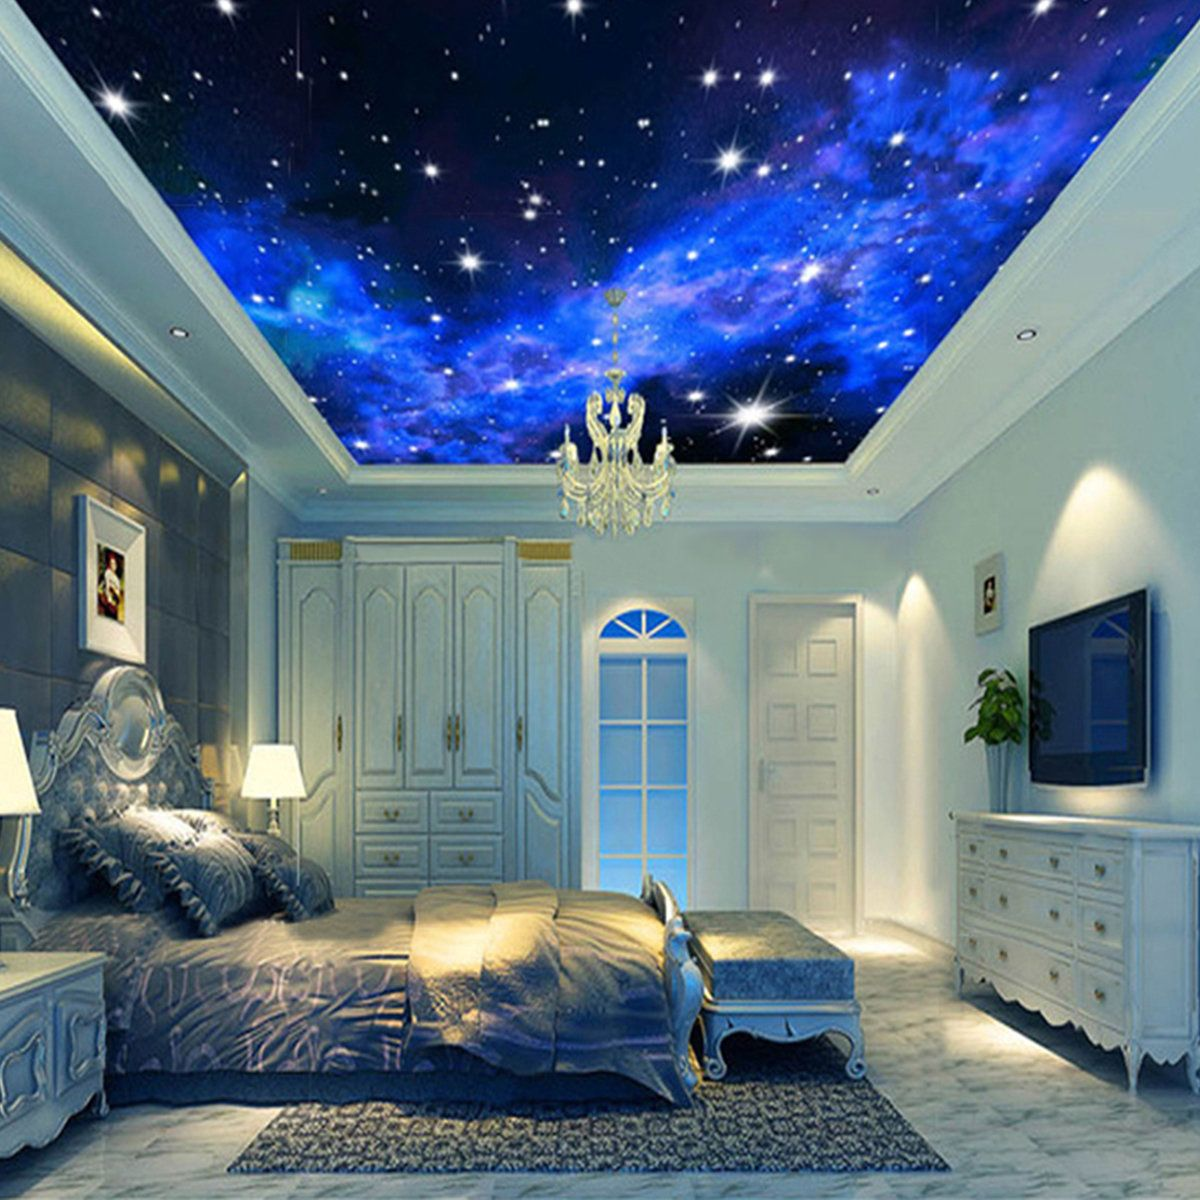 3d wallpaper mural night clouds star sky wall paper for Best 3d wallpaper for bedroom